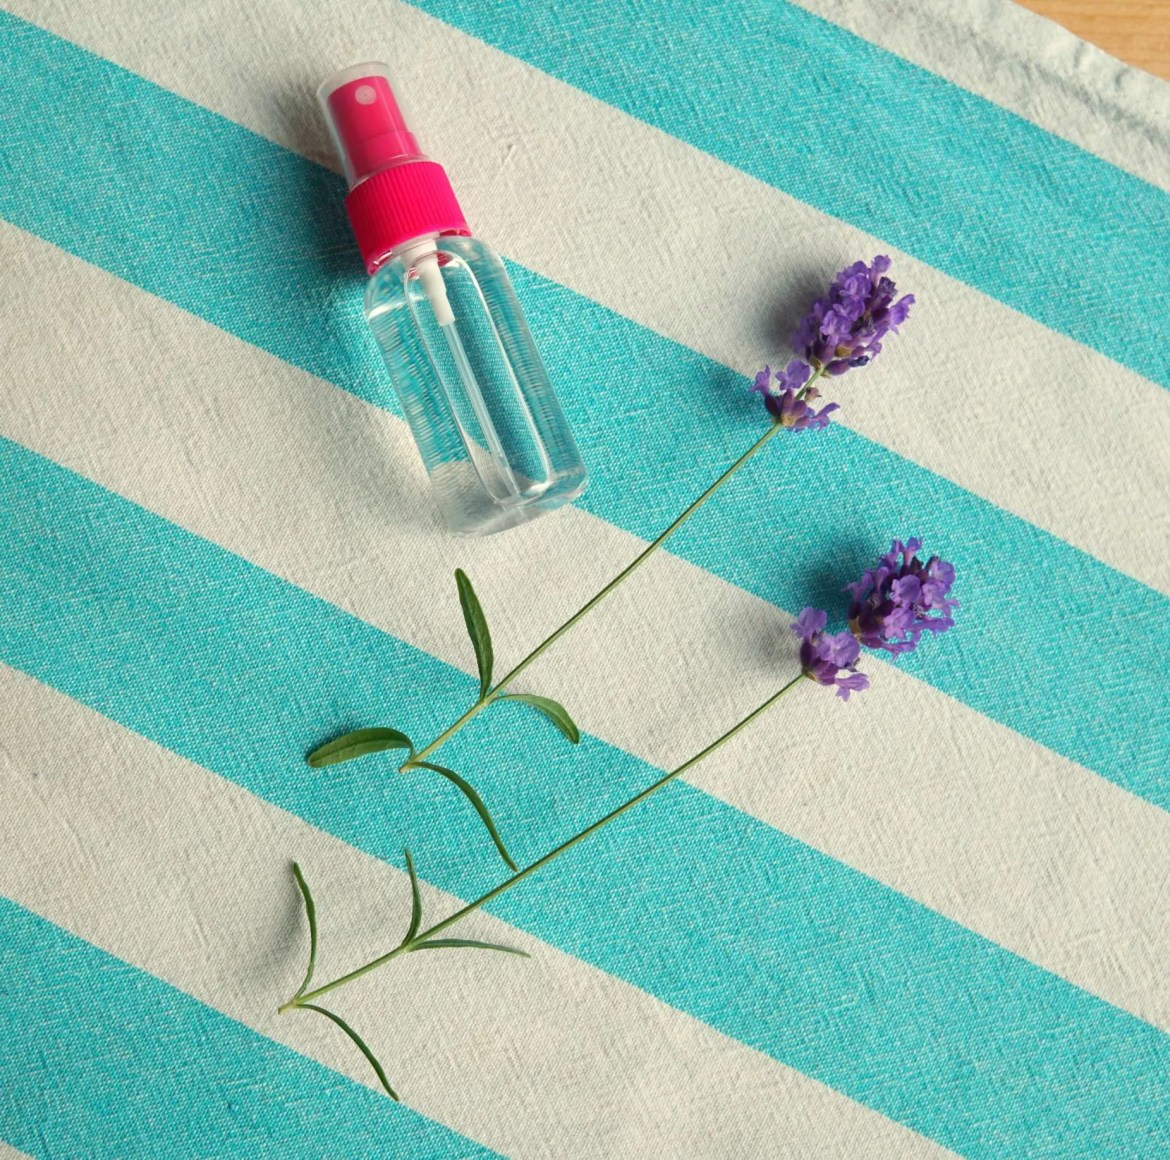 How To make your own easy anti mosquito spray to keep those pesky bugs away. PS it doubles as a Good Night Sleep Spray! DIY by The Makeup Dummy